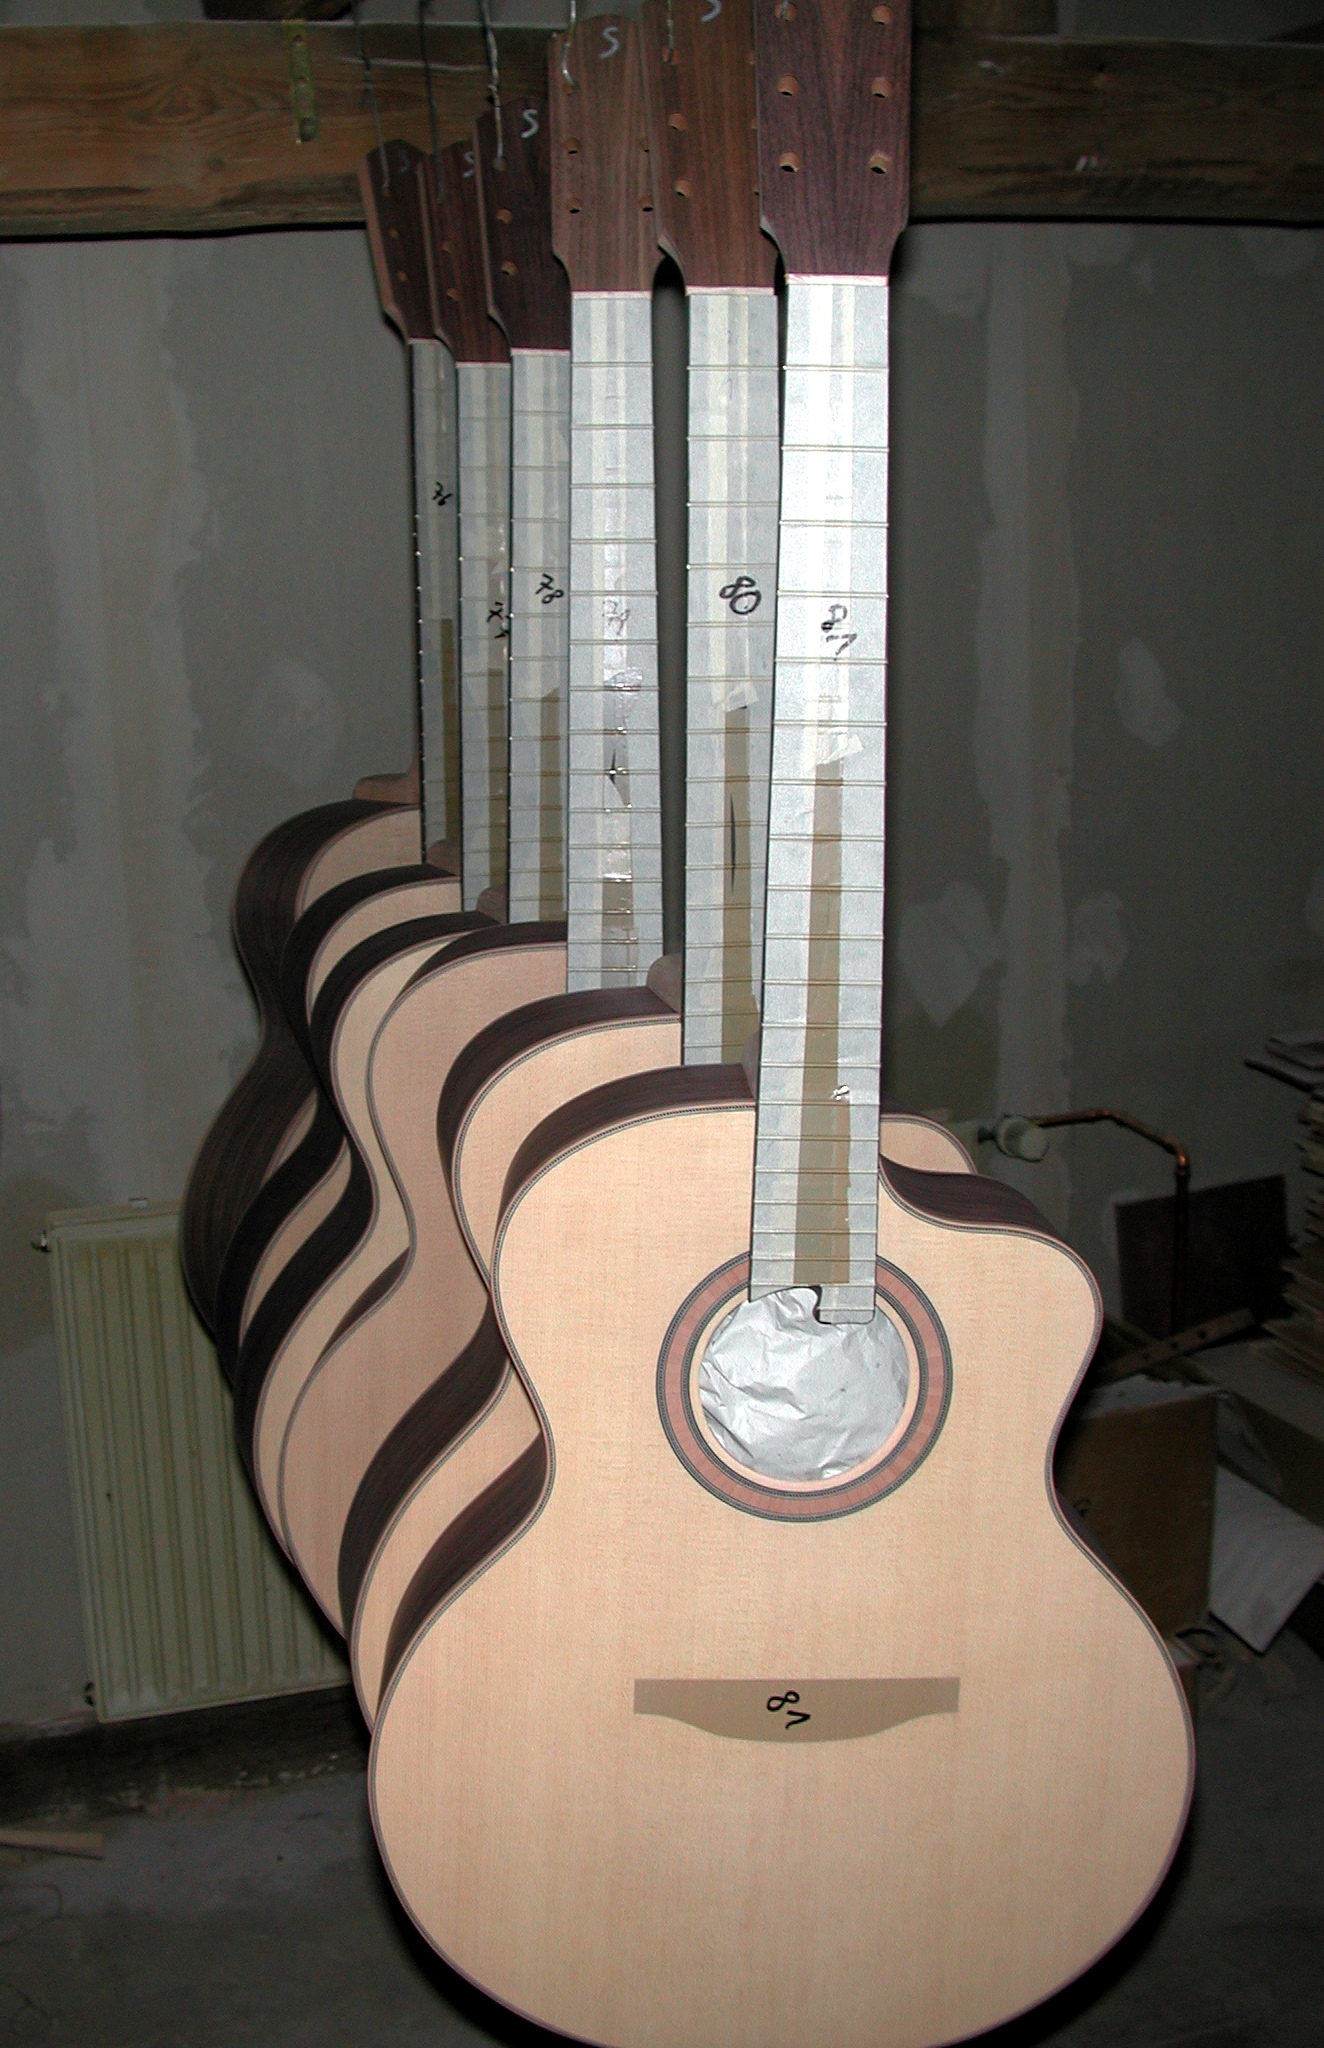 Finishing: The instruments are now ready for finishing. The fretboard and the place for the bridge are masked with tape, the soundhole is clogged with paper, in order to prevent the lacquer from going inside.